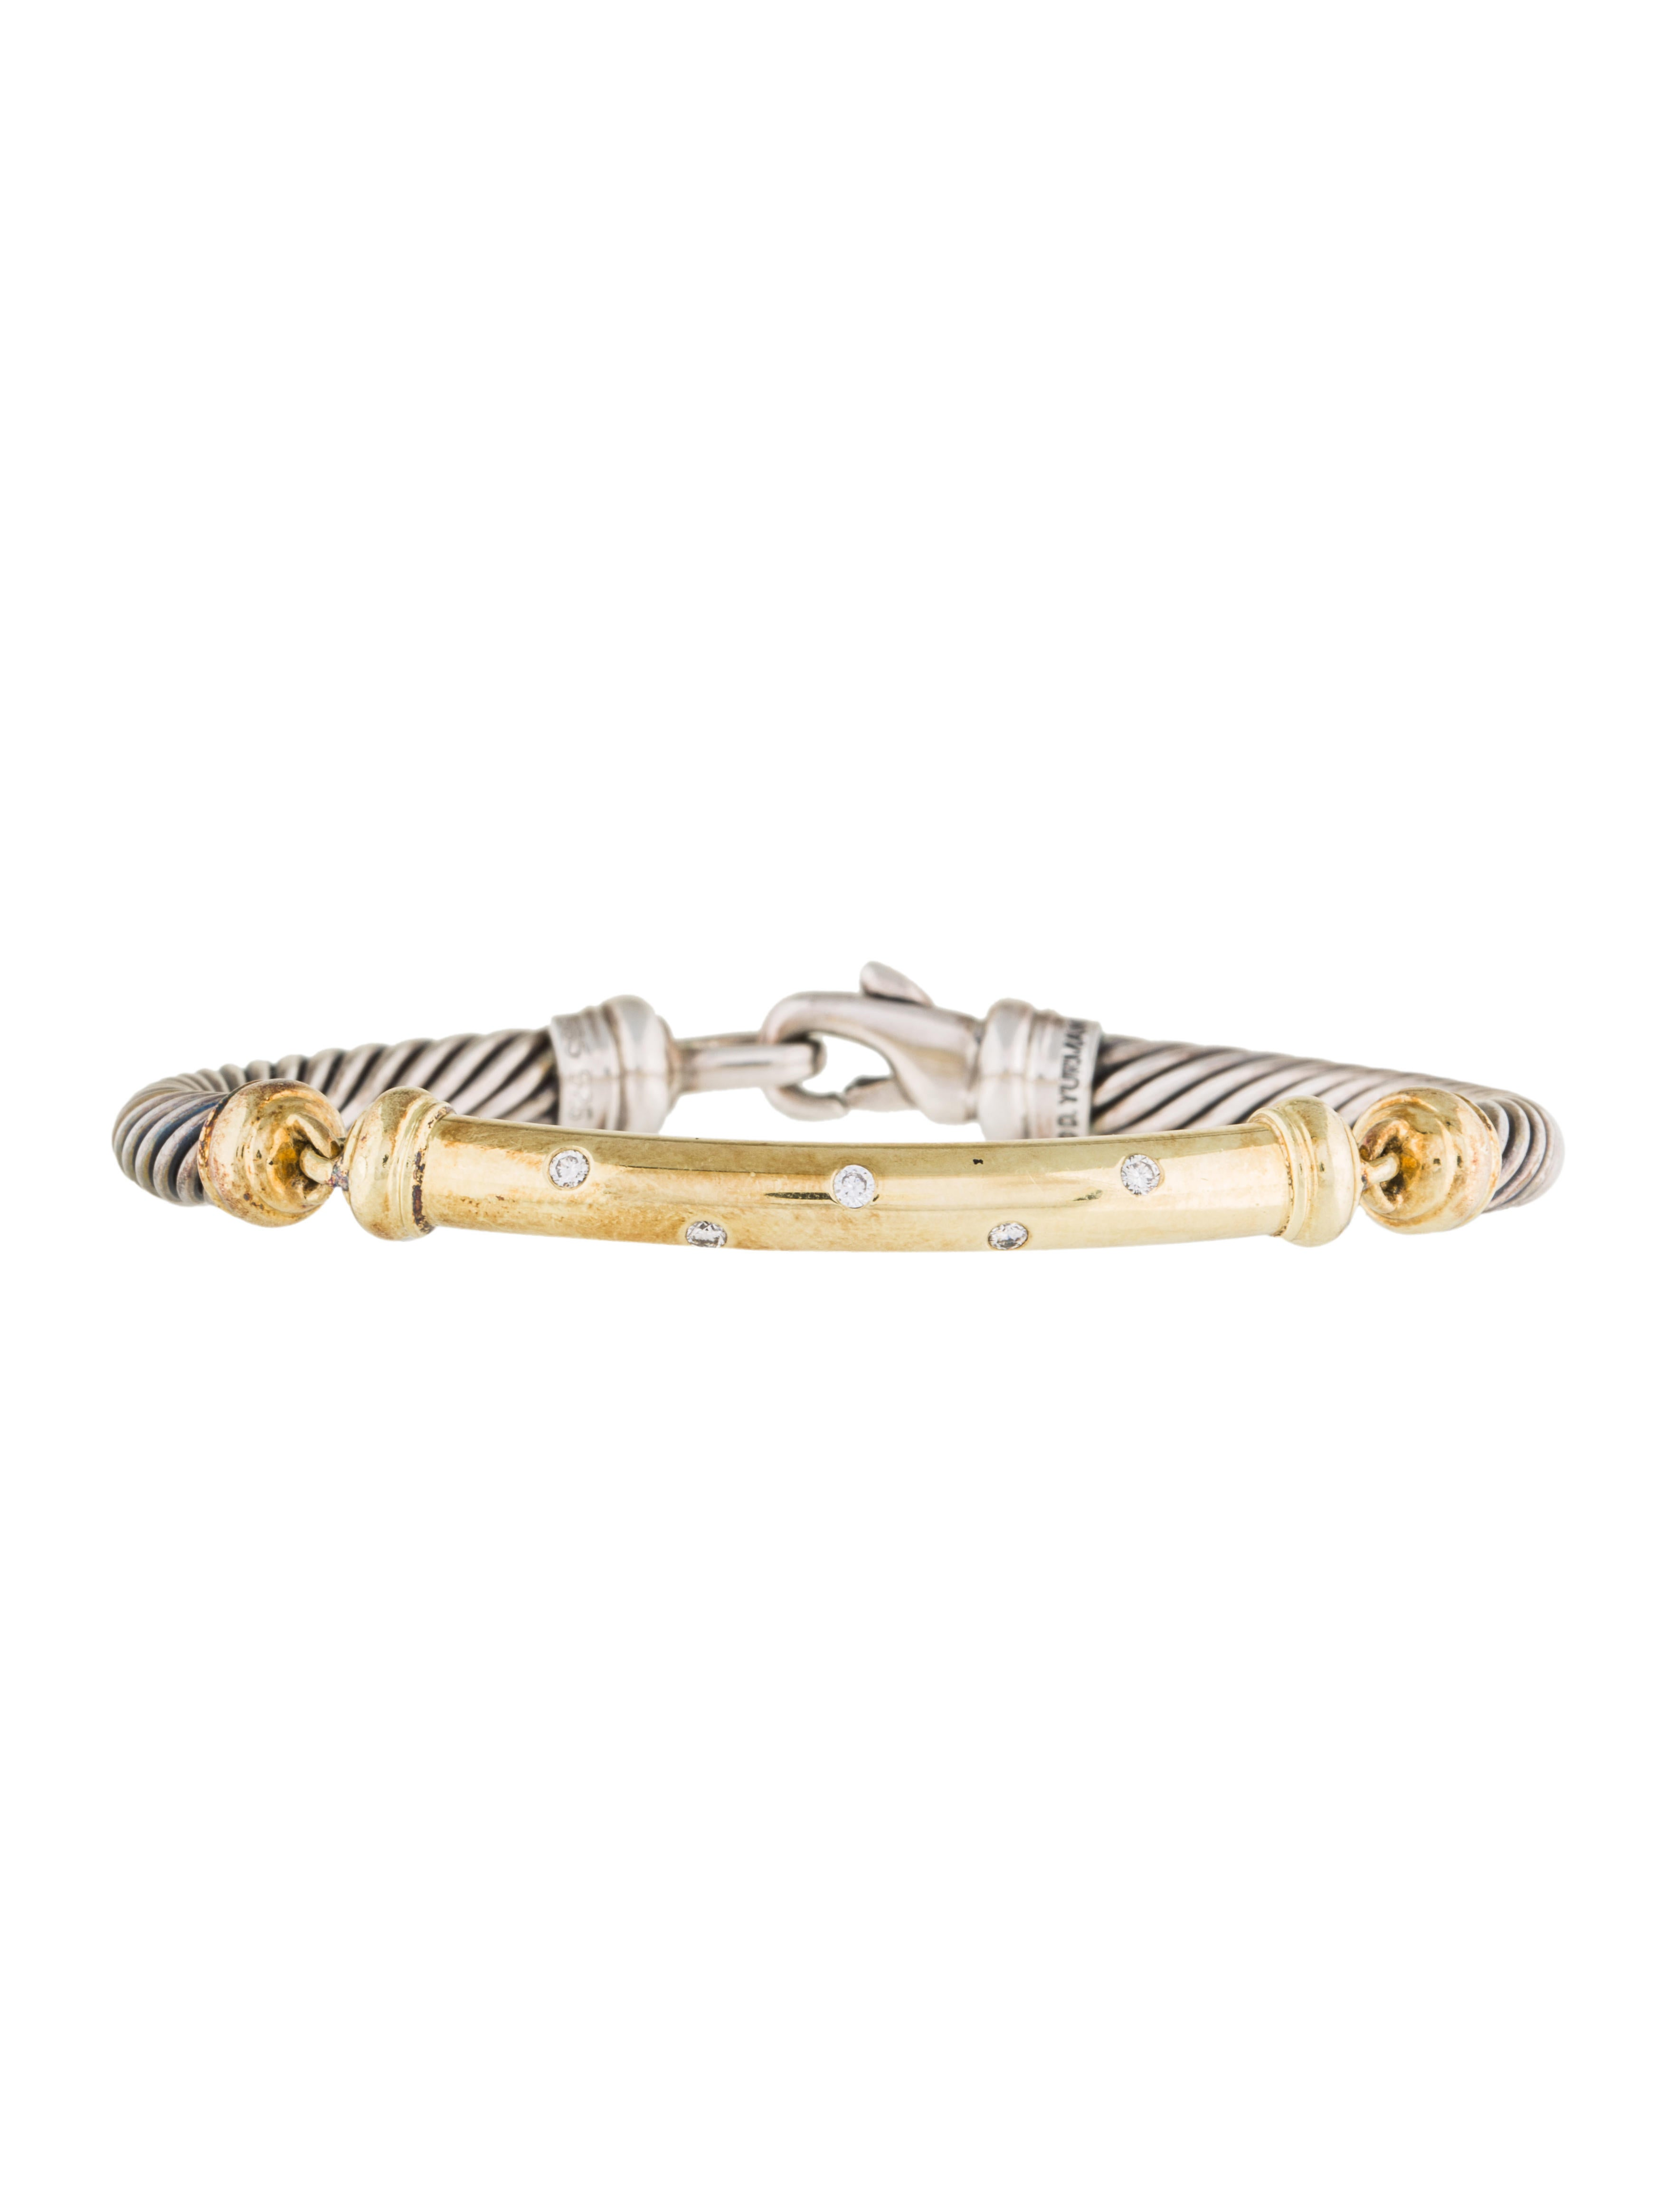 David yurman two tone diamond metro cable bracelet for David yurman inspired bracelet cable